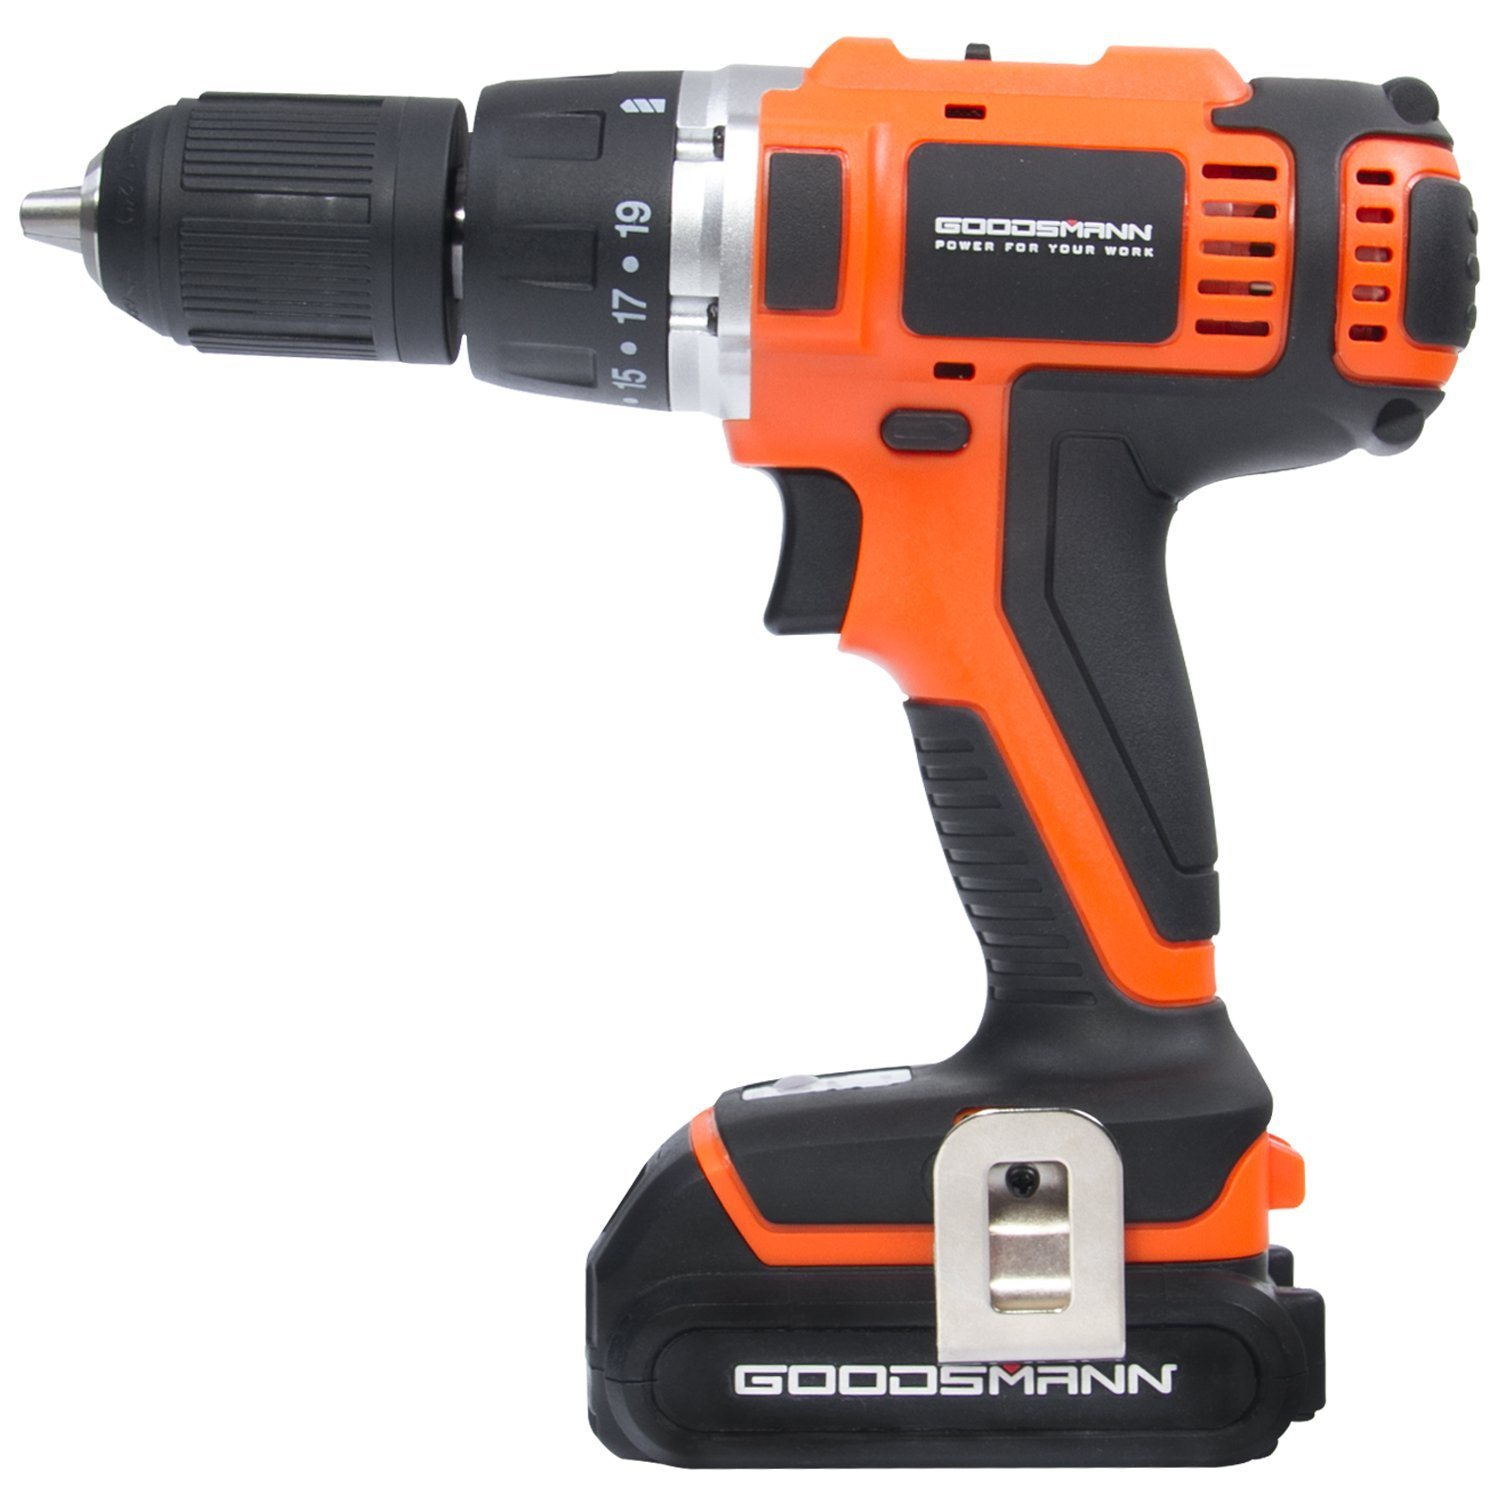 GOODSMANN 18V Li-ion Battery Cordless Drill/Driver Electric Drill Screwdriver with 2200 mAh Battery, 2-Speeds 1400RPM 19+1 Position Keyless Clutch with LED Light, Compact Drill Driver Kit 9923-1013-01